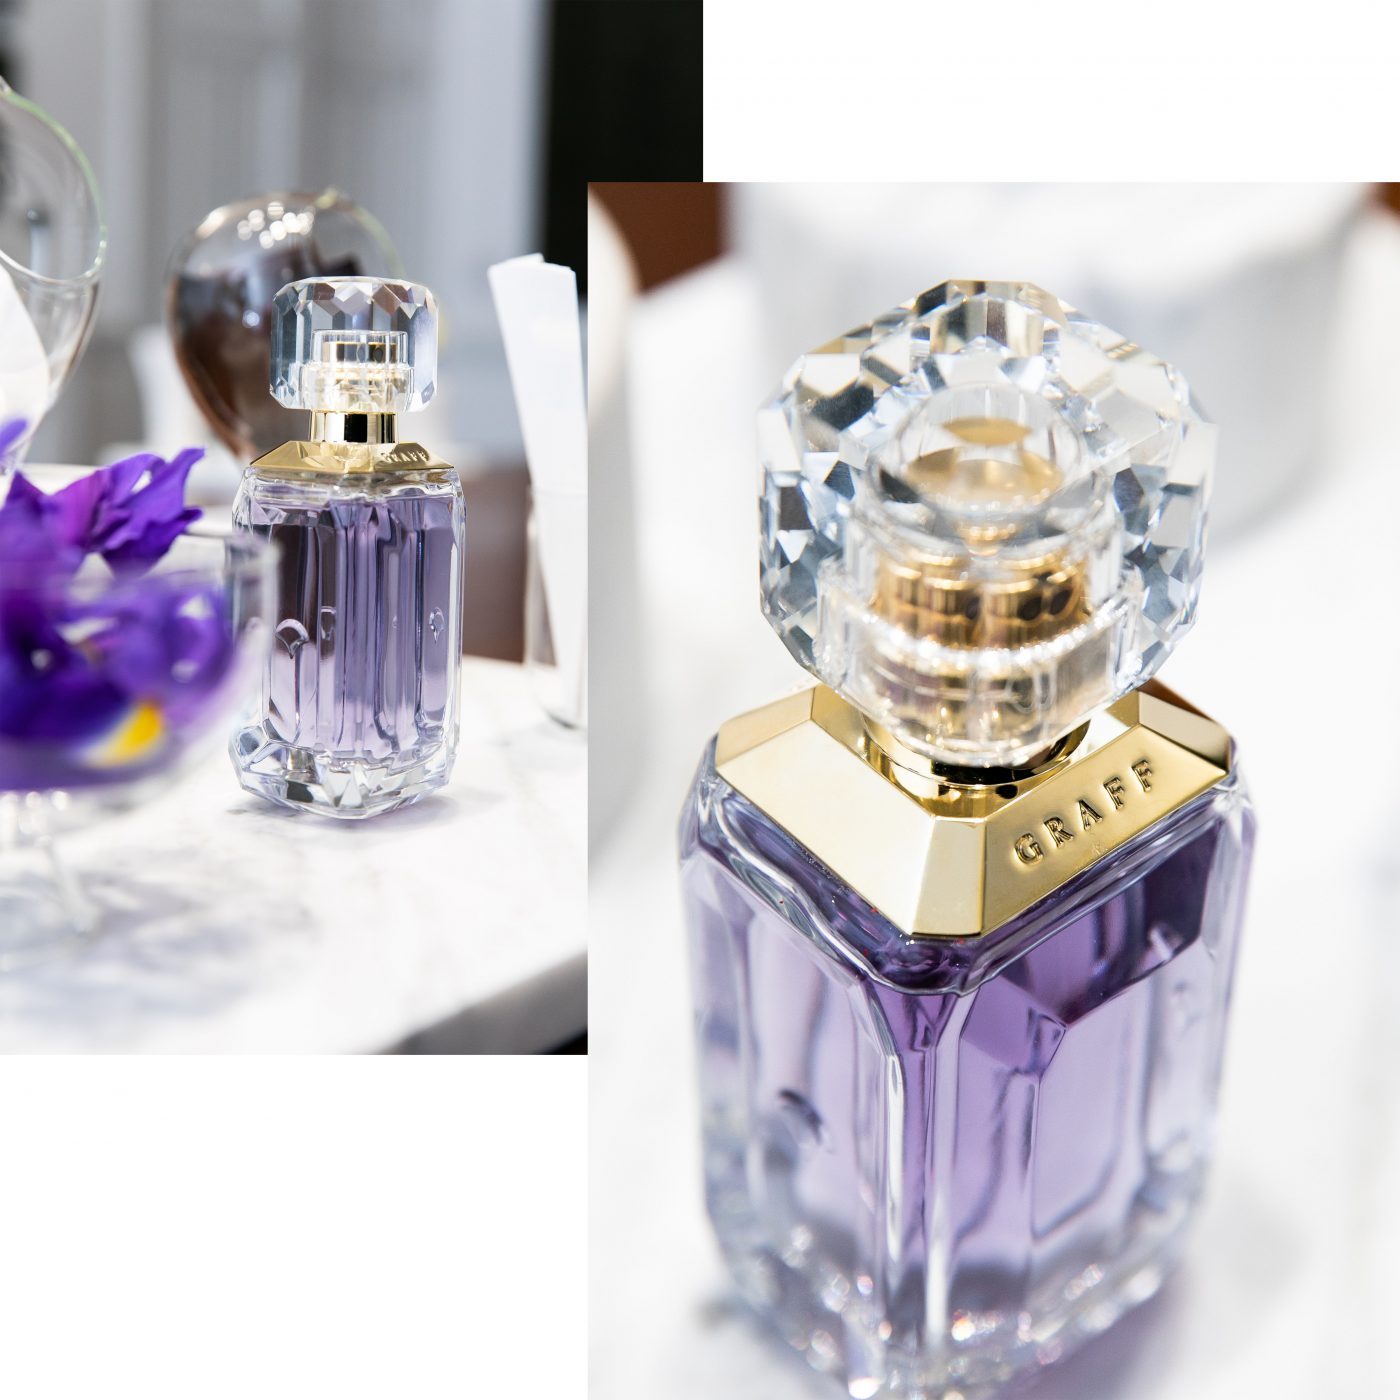 , A DAY IN LONDON: GRAFF LESEDI LA RONA FRAGRANCE LAUNCH, Victoria's Jewelry Box